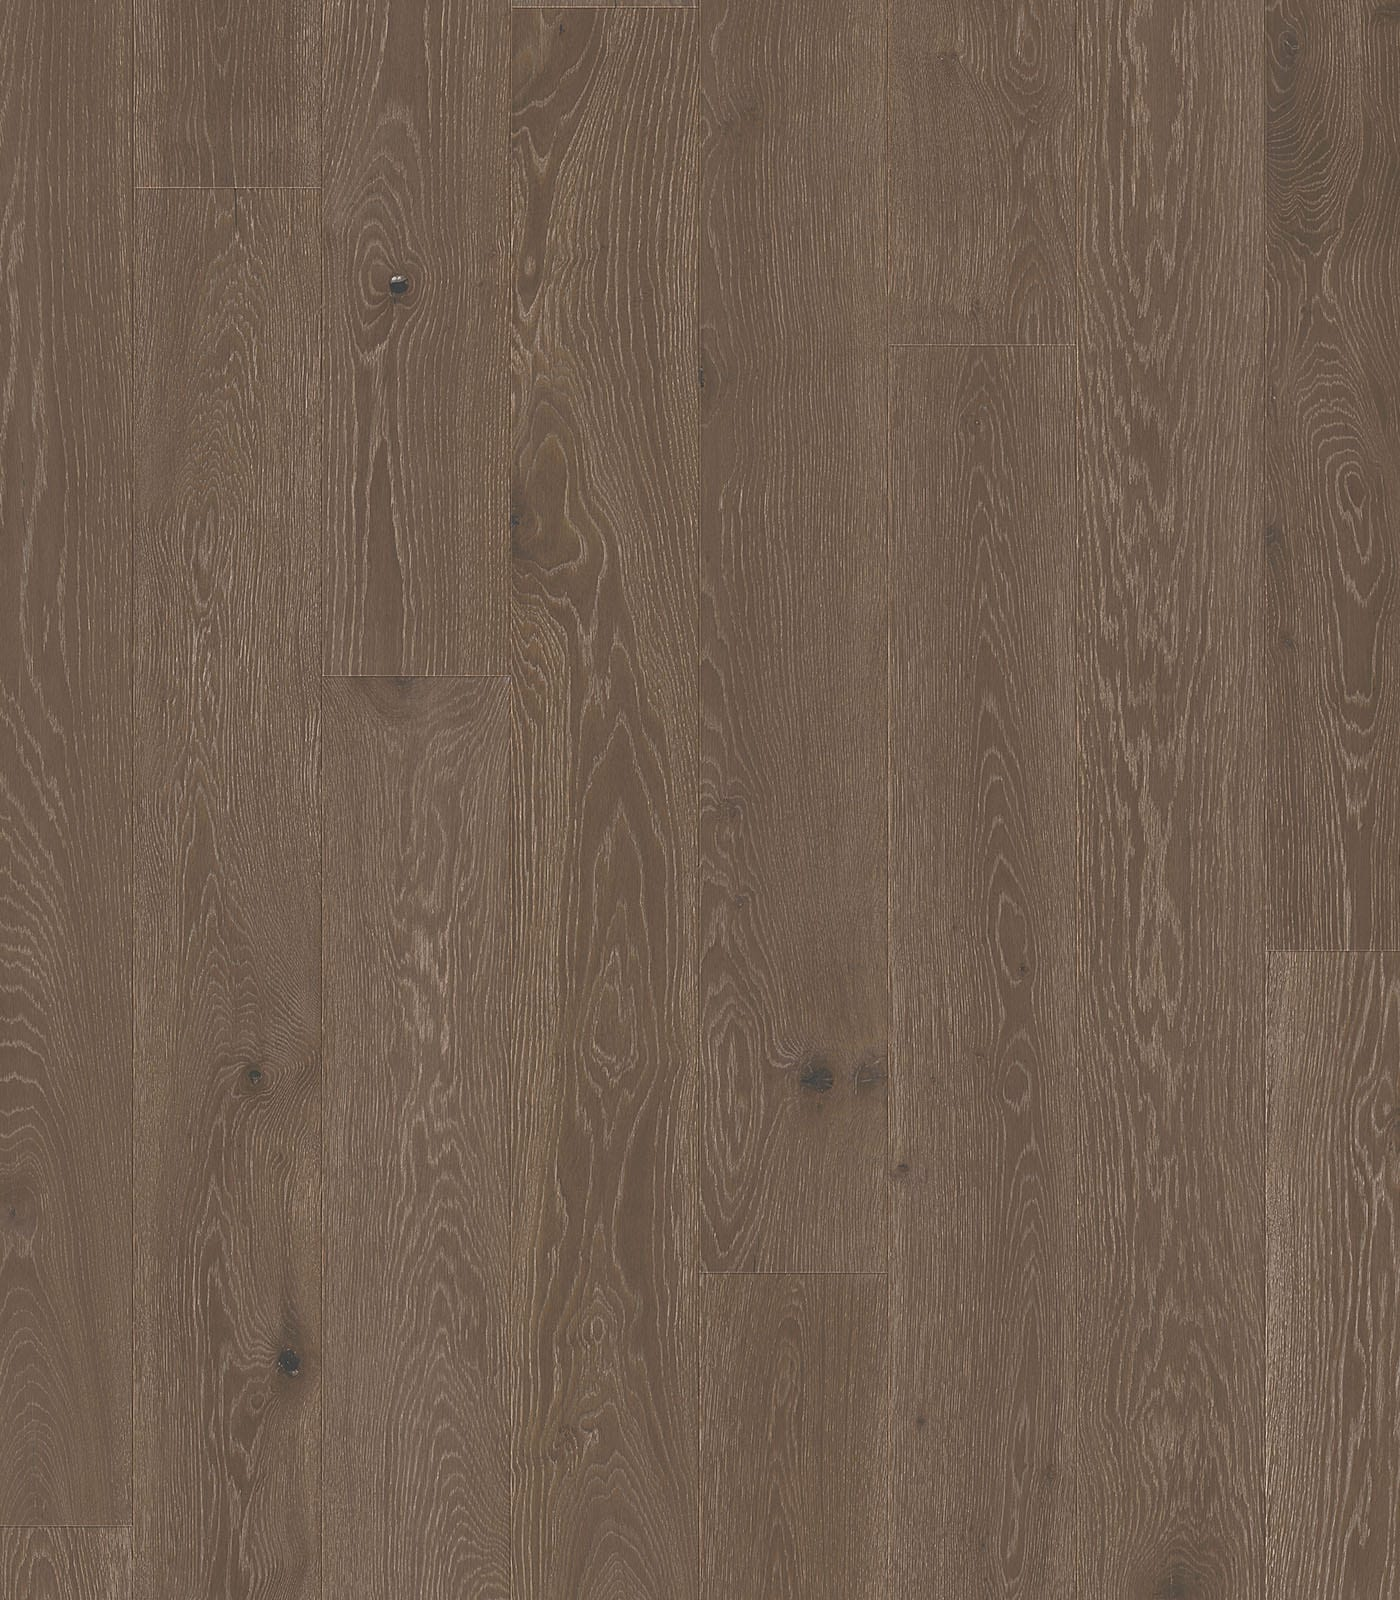 Havana-Colors Collection-European oak floors-flat